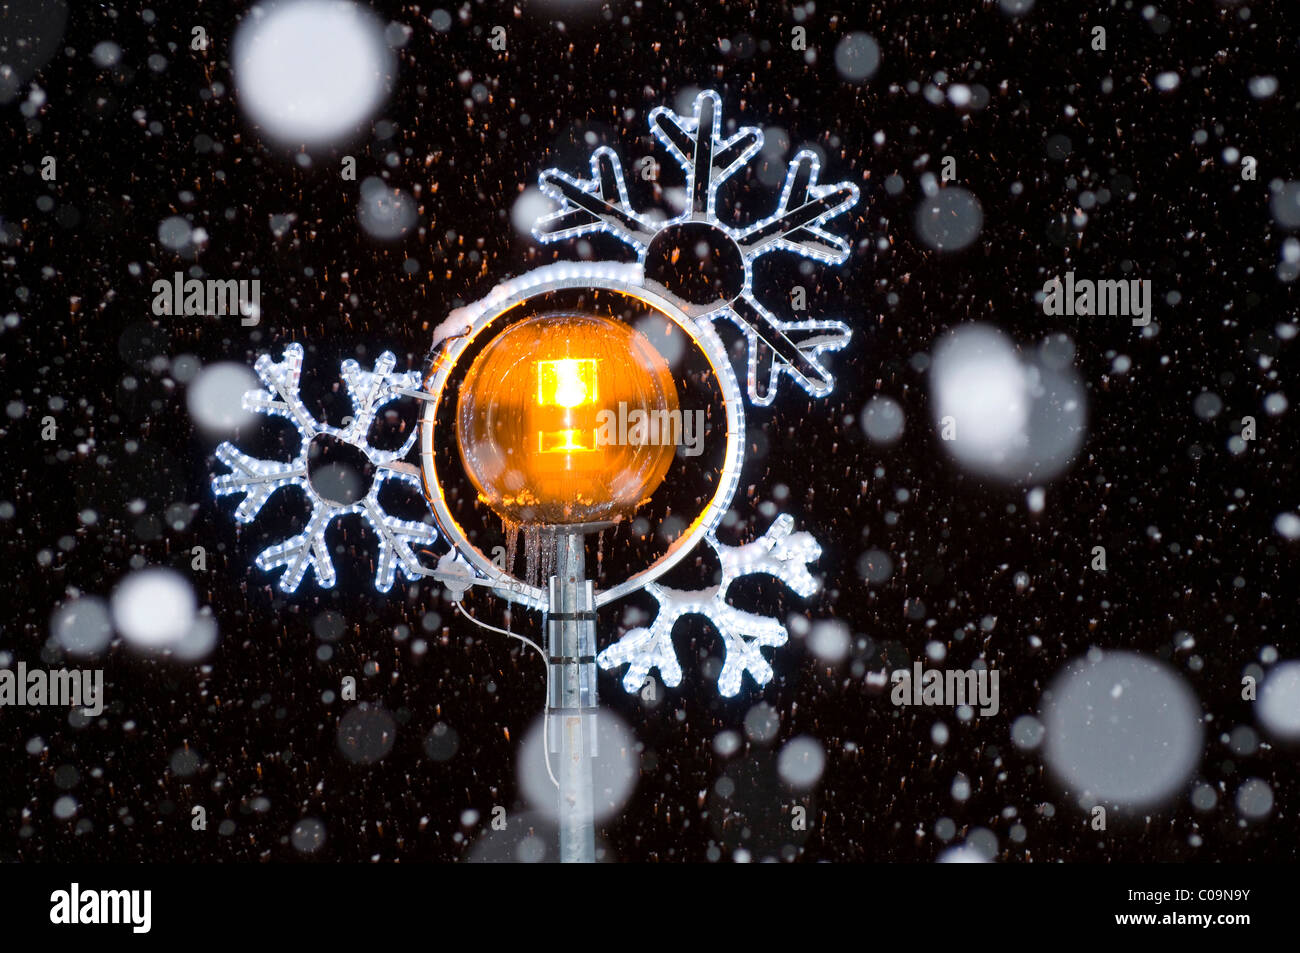 Christmas lights with snow flakes at night - Stock Image